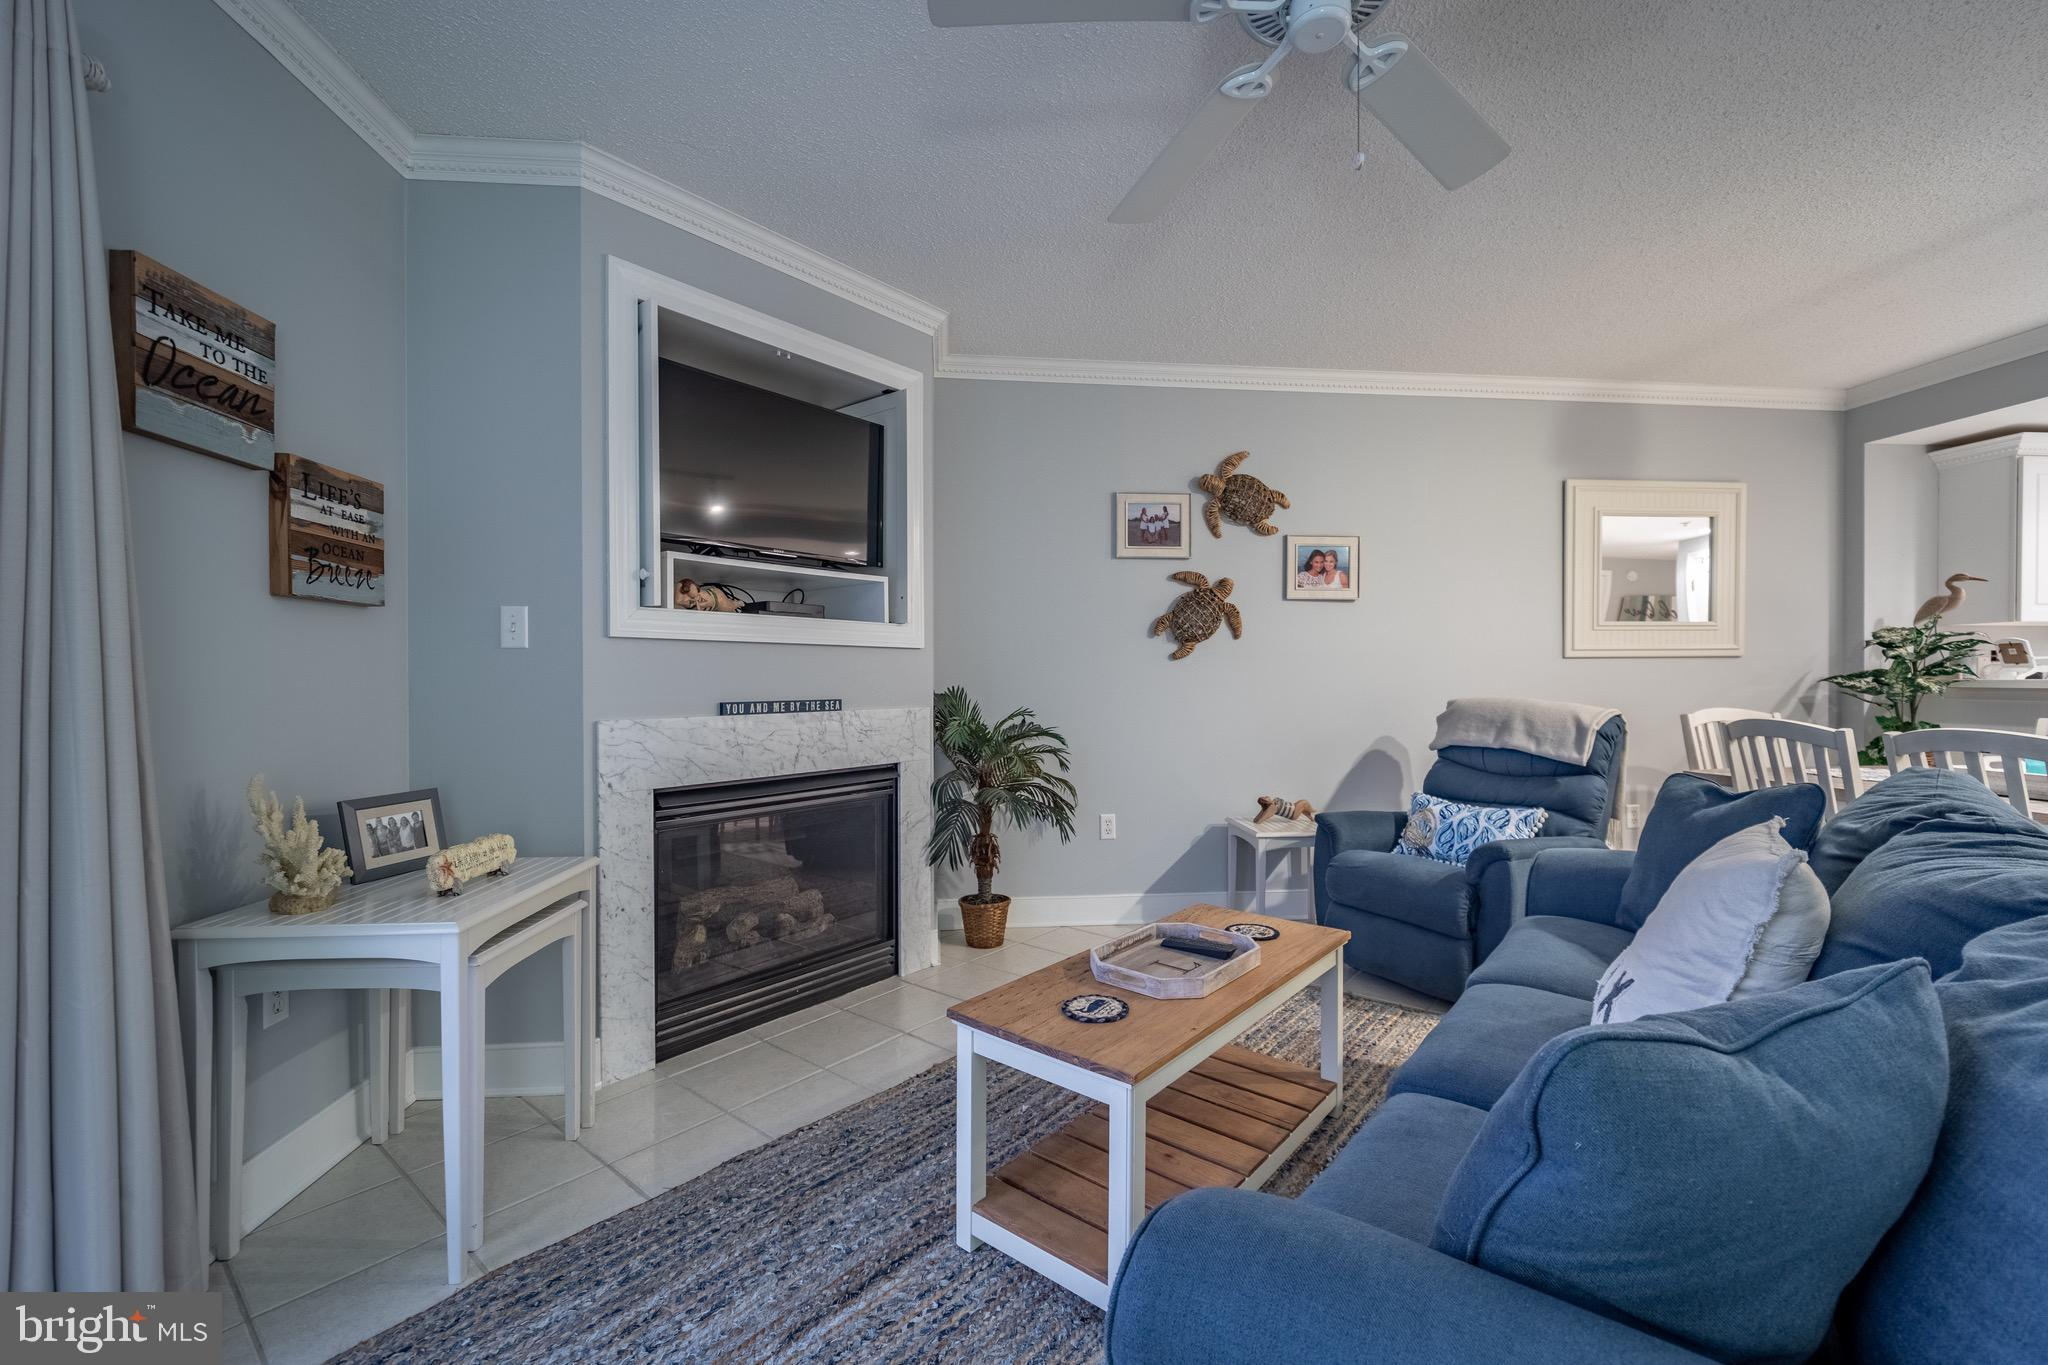 Ocean And Bay Views from this  Nicely Decorated 2 bedroom 2 bath condo with new appliances and a custom shiplap wall just added to the 2nd bedroom.   Sunset bay includes a beautiful rooftop pool, and a convenient location in the middle of town.